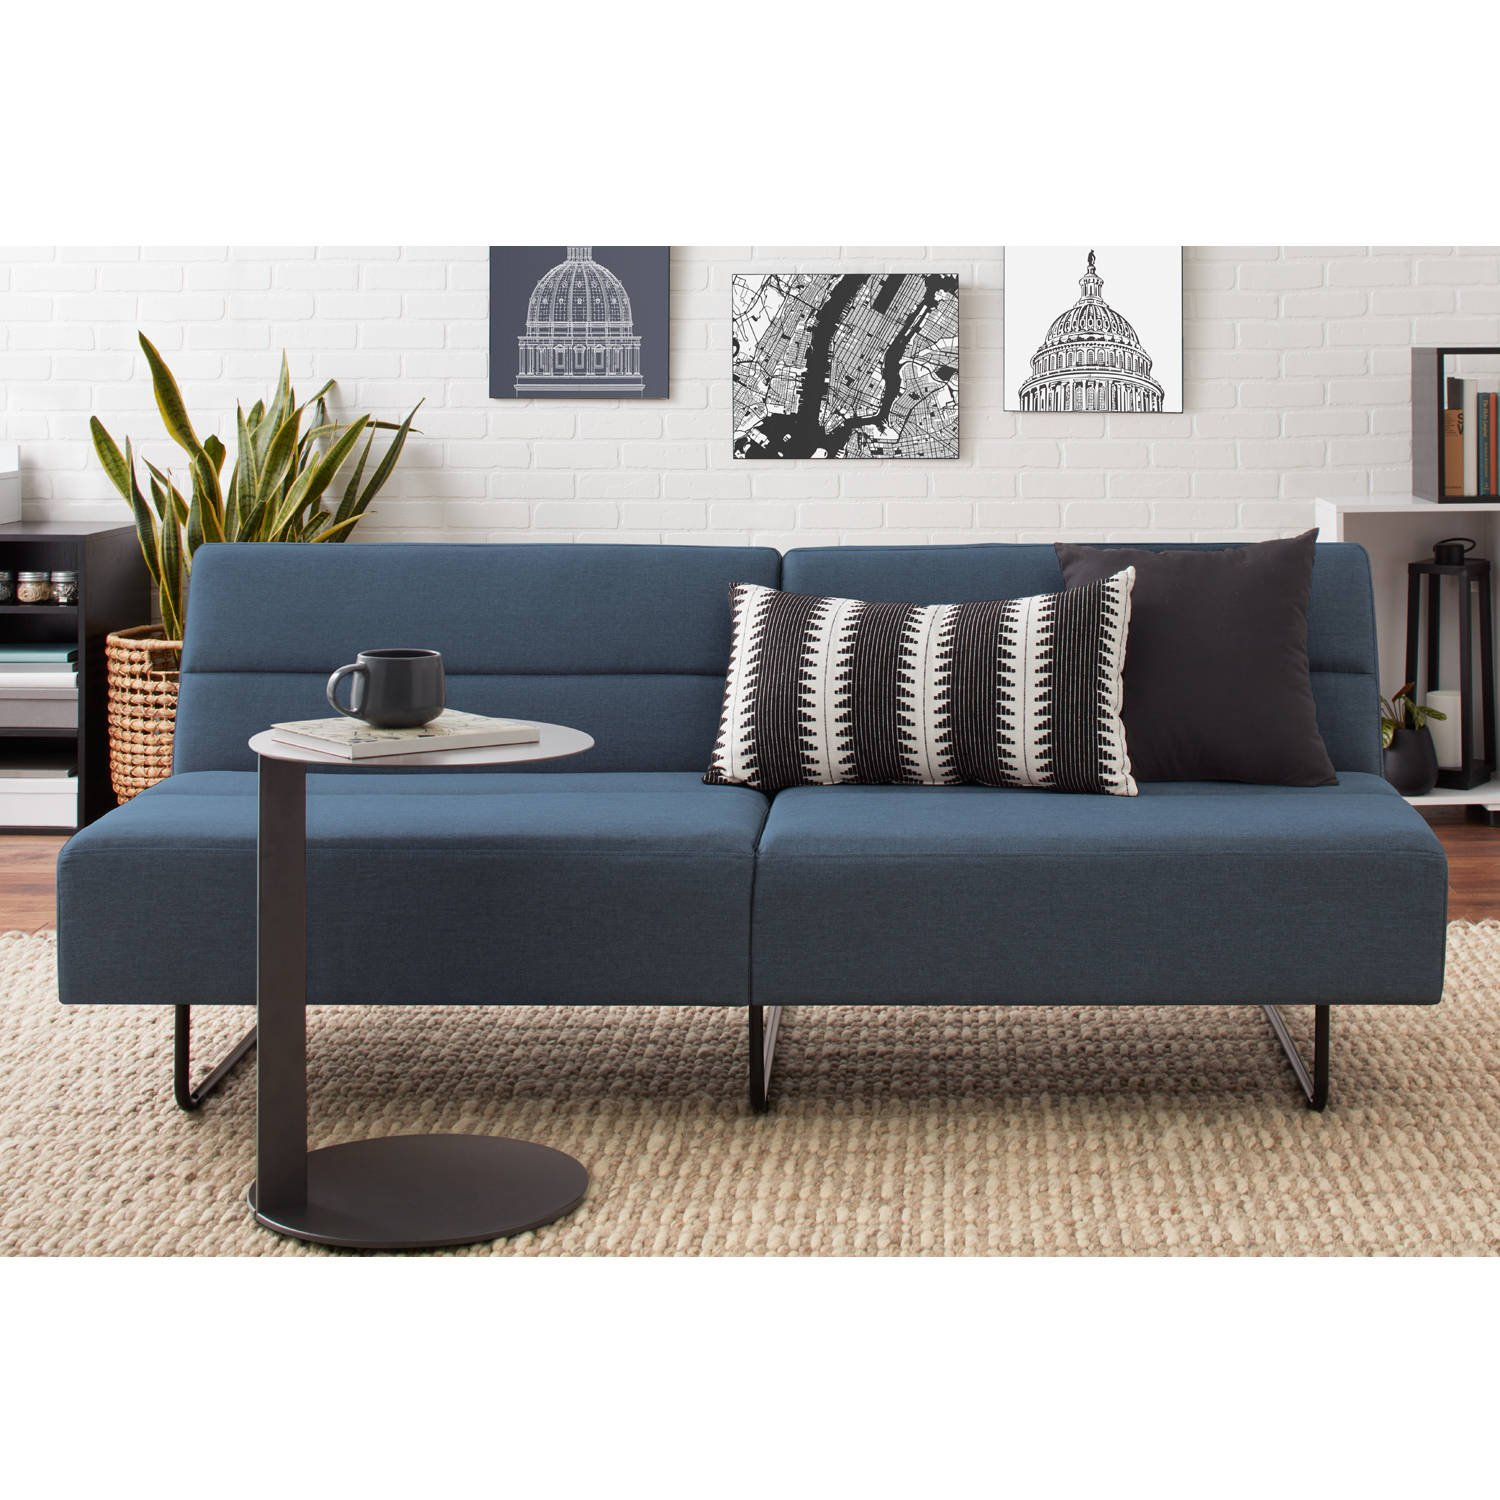 Blue faux leather futon sofa bed modern piece of furniture fully upholstered powder coated steel legs convertible sofa into sleeper bundle with our